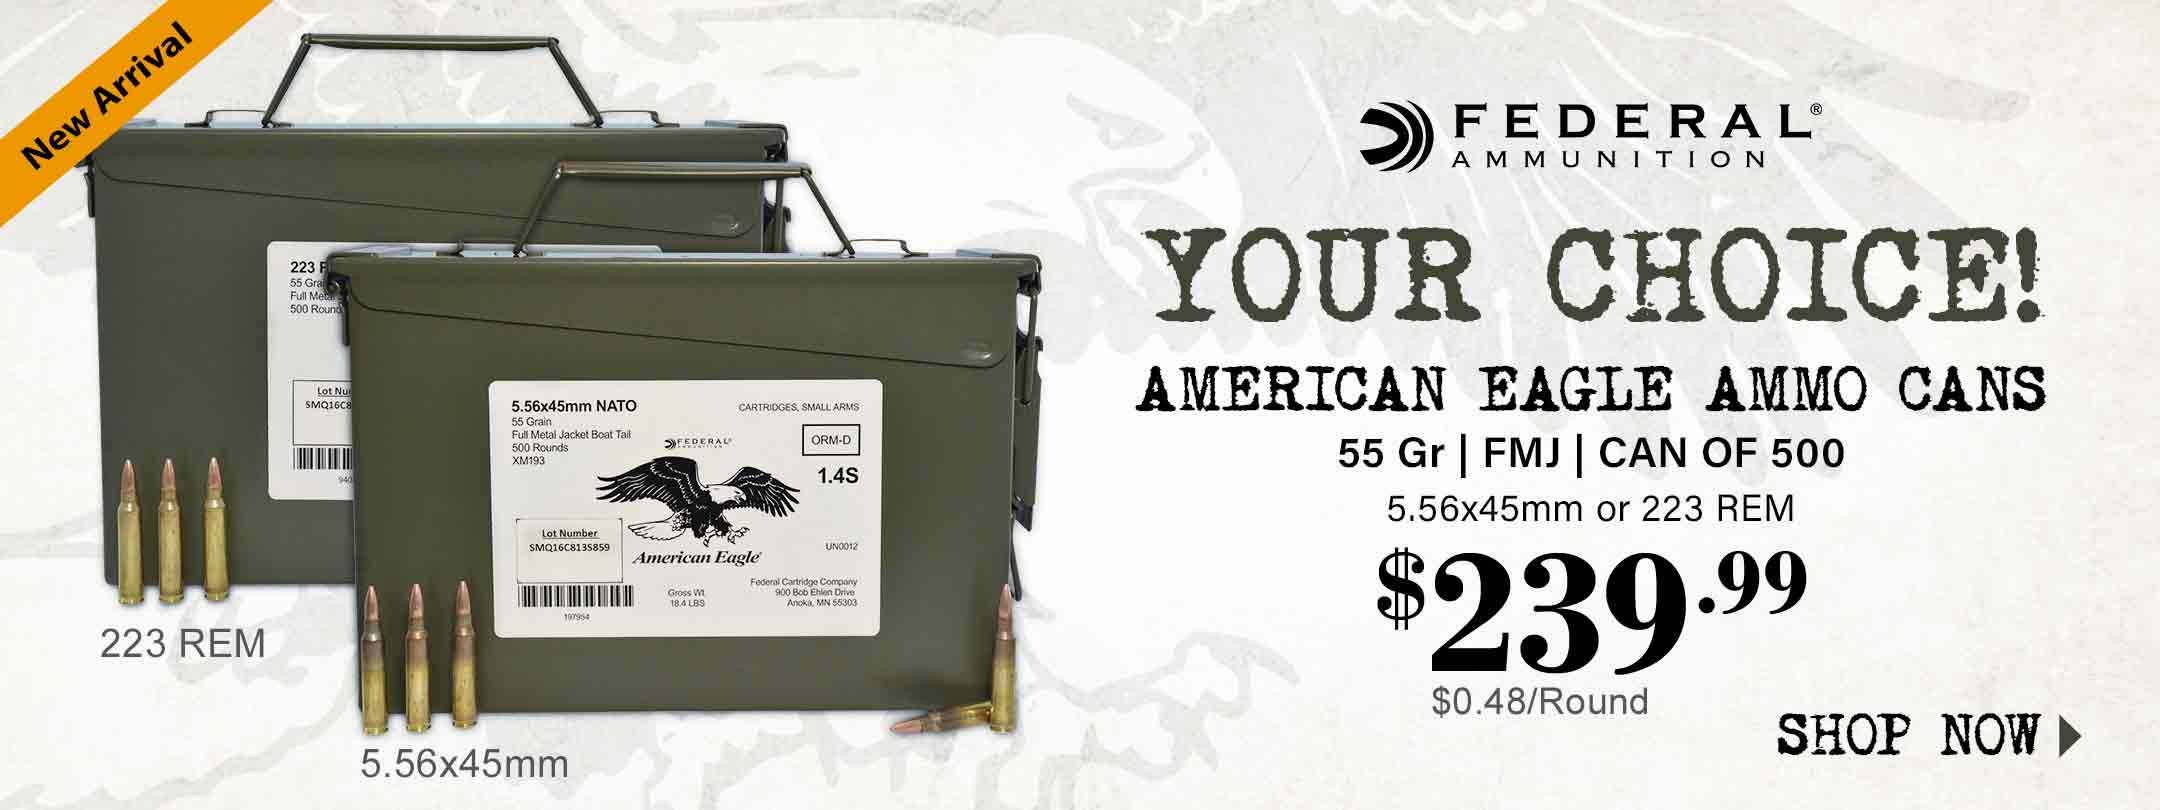 Your Choice! Federal American Eagle Ammo Cans 5.56mm & 223 REM